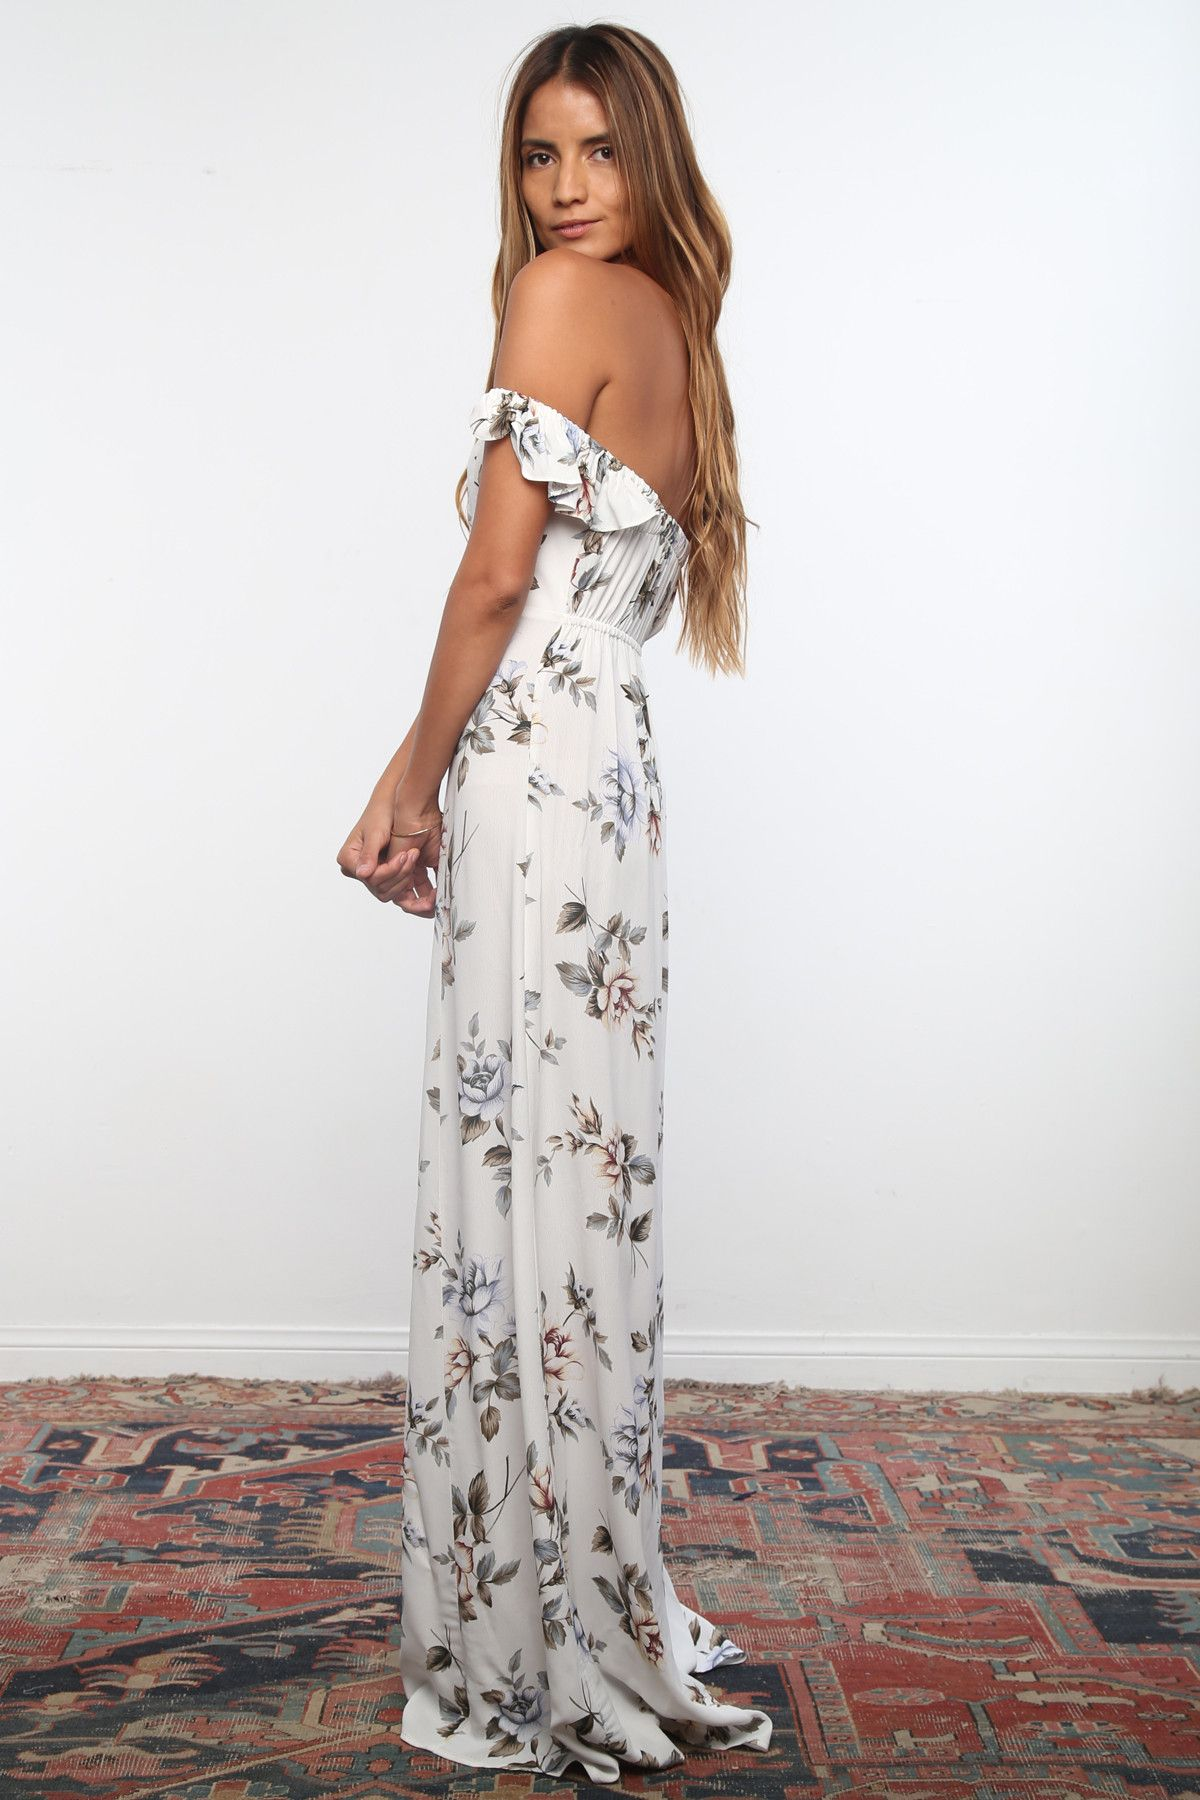 Bardot Maxi Dress | WEAR | Pinterest